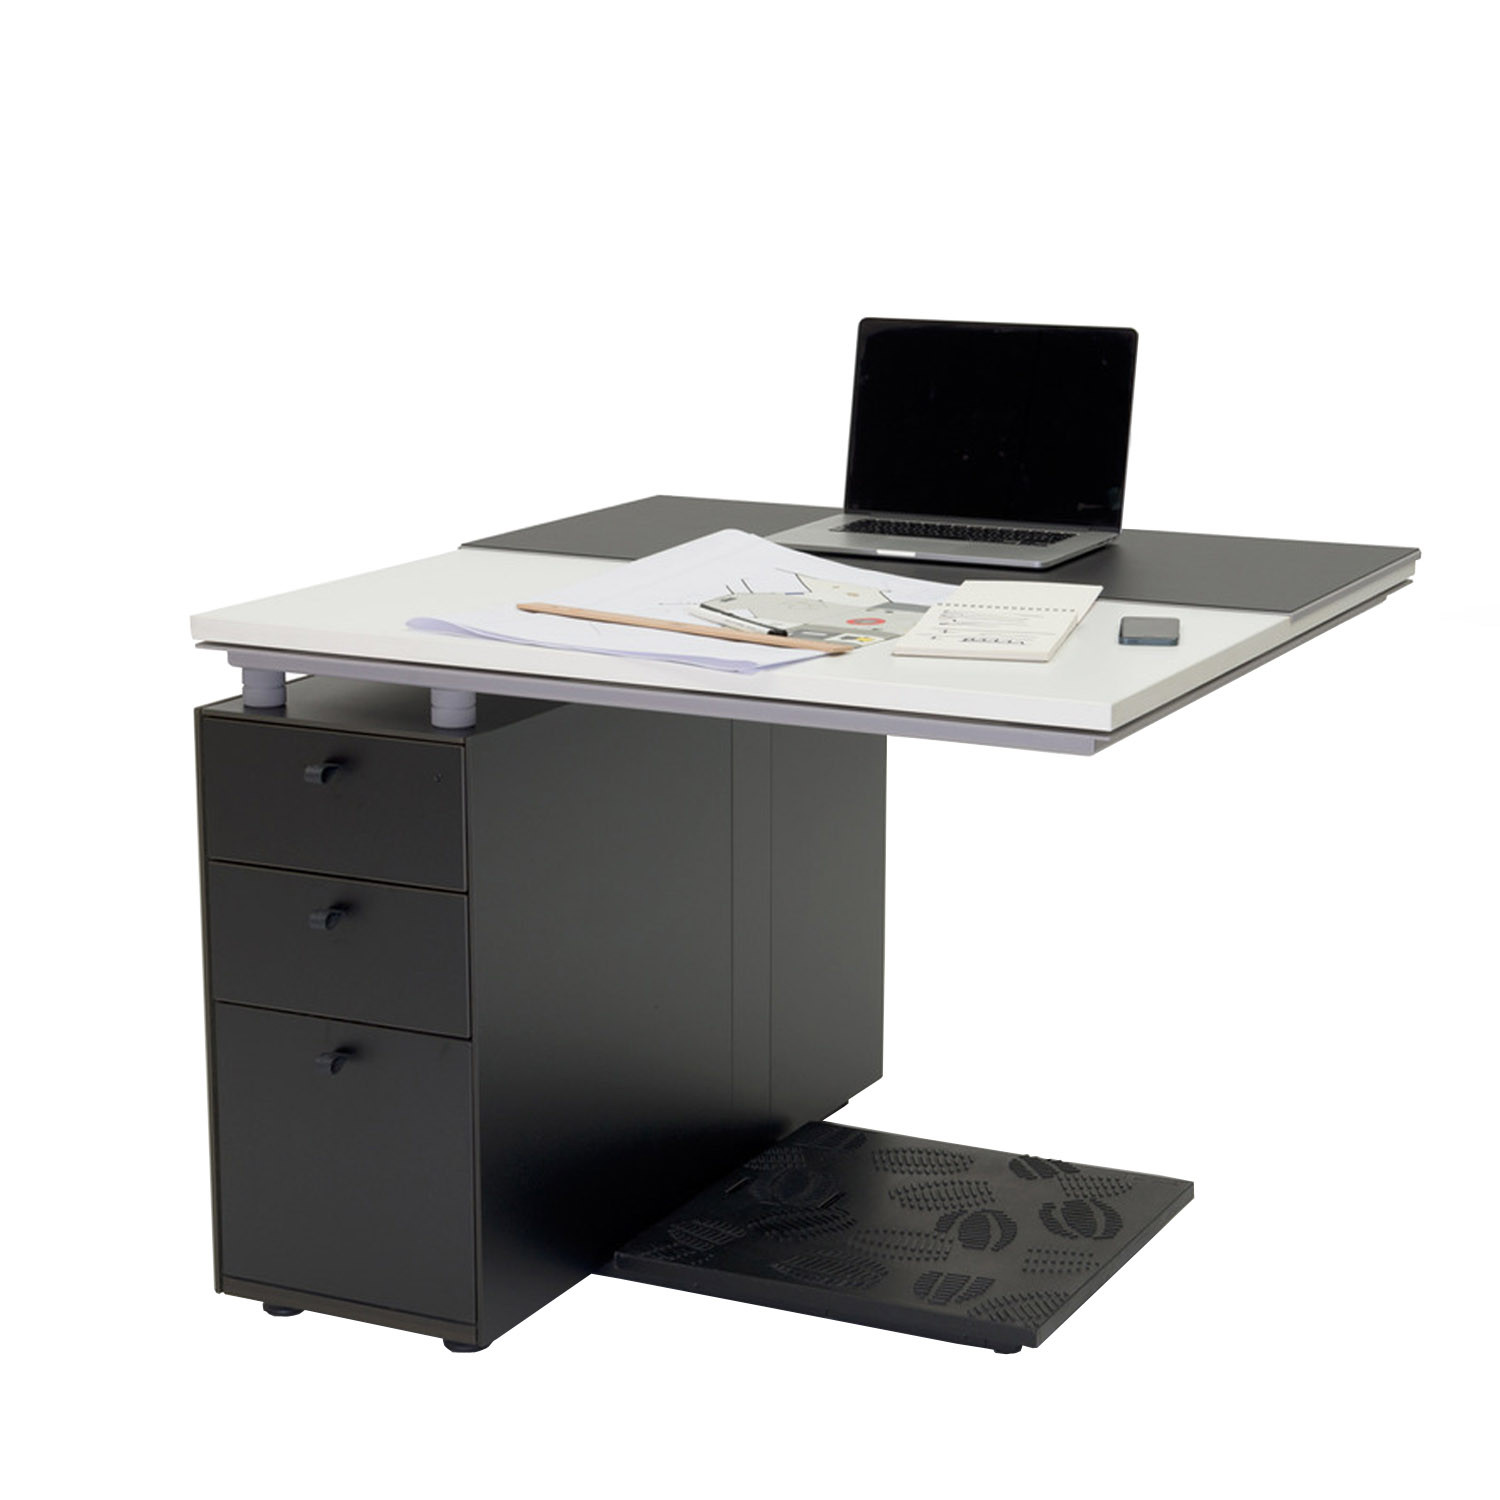 M2 Desk Workstation